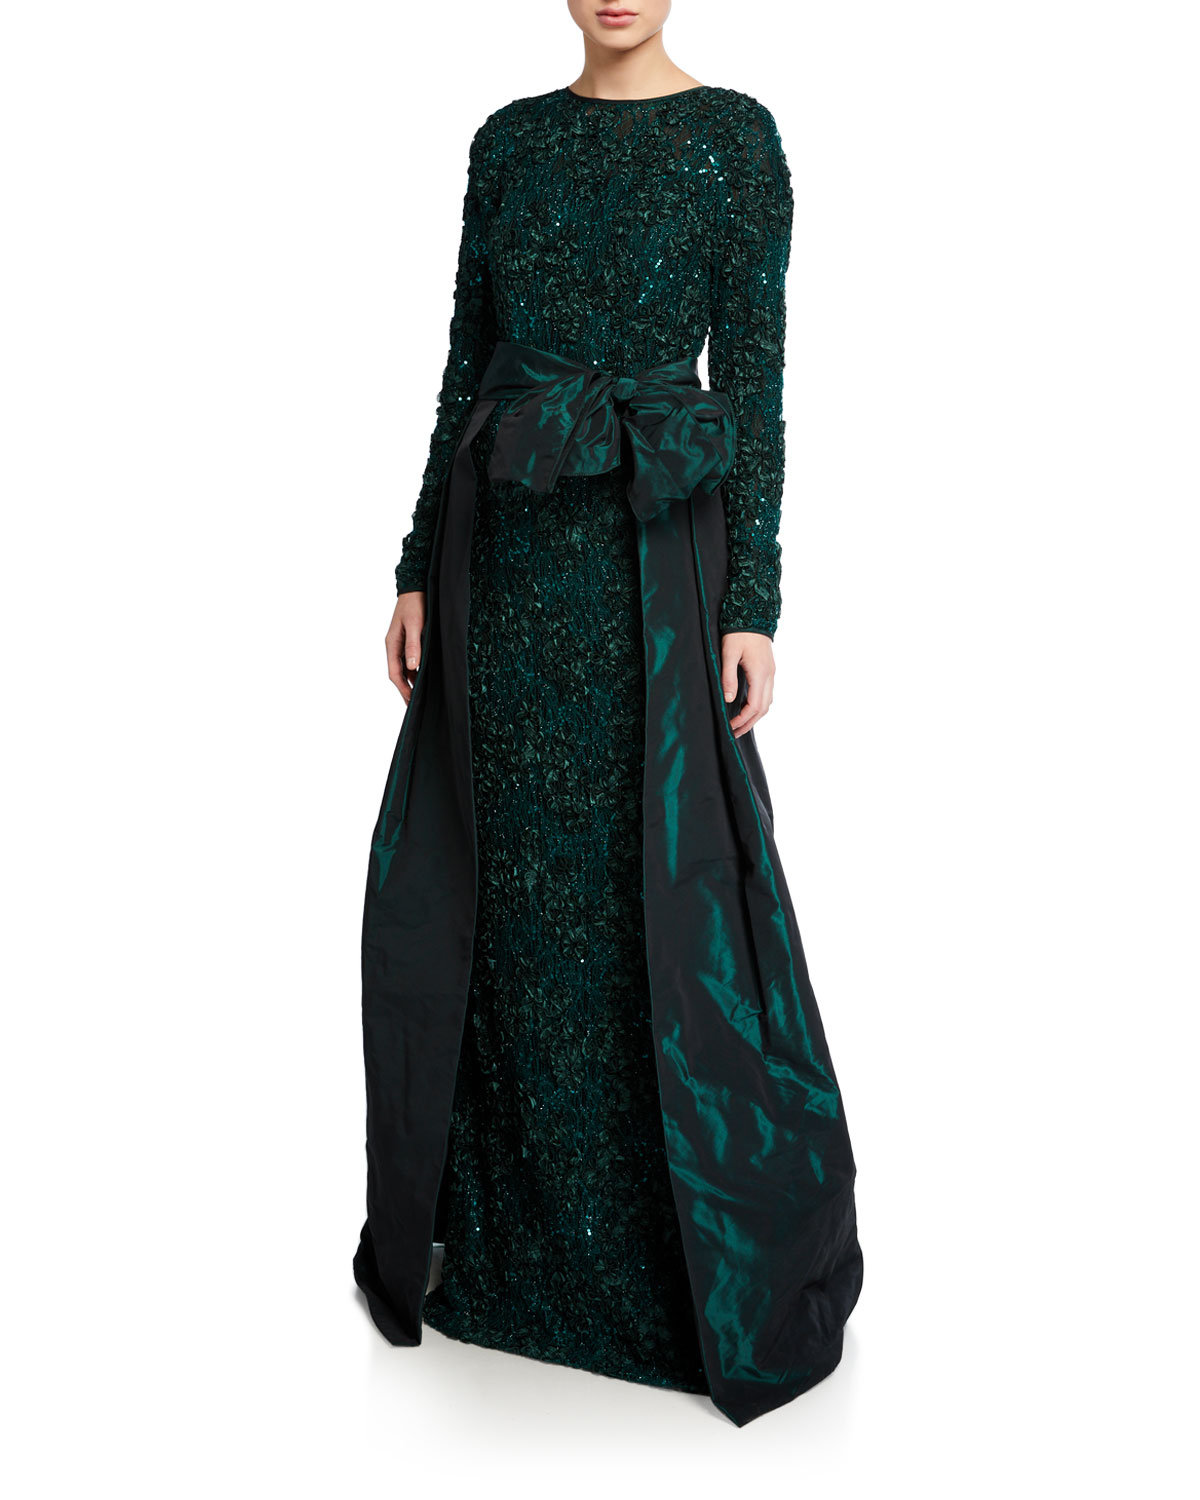 Rickie Freeman For Teri Jon Skirts LONG-SLEEVE SOUTACHE LACE TAFFETA OVER-SKIRT GOWN